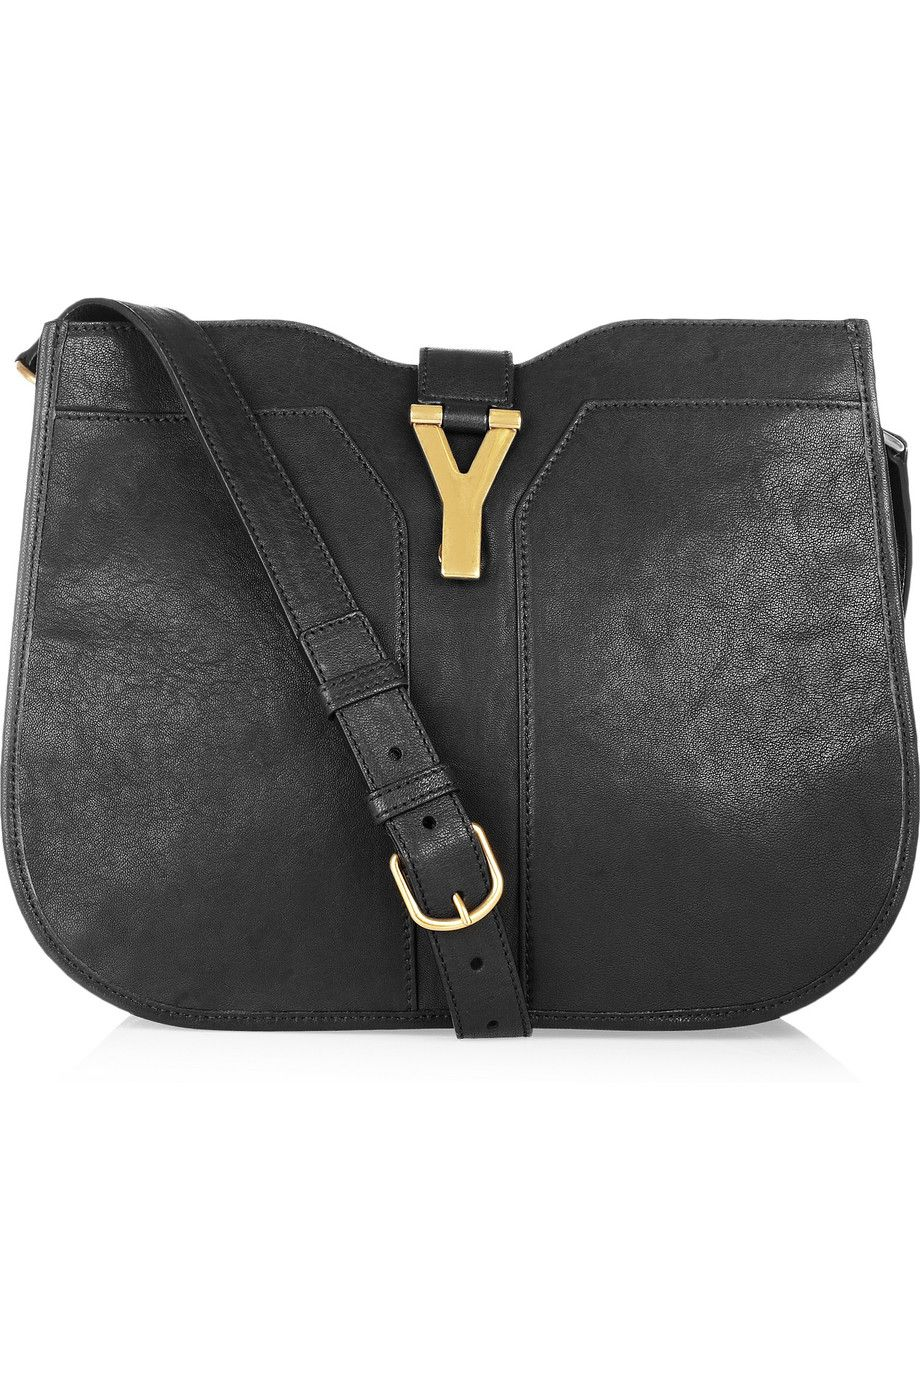 Yves Saint Laurent - Chyc leather shoulder bag  1c7cd97d5702a